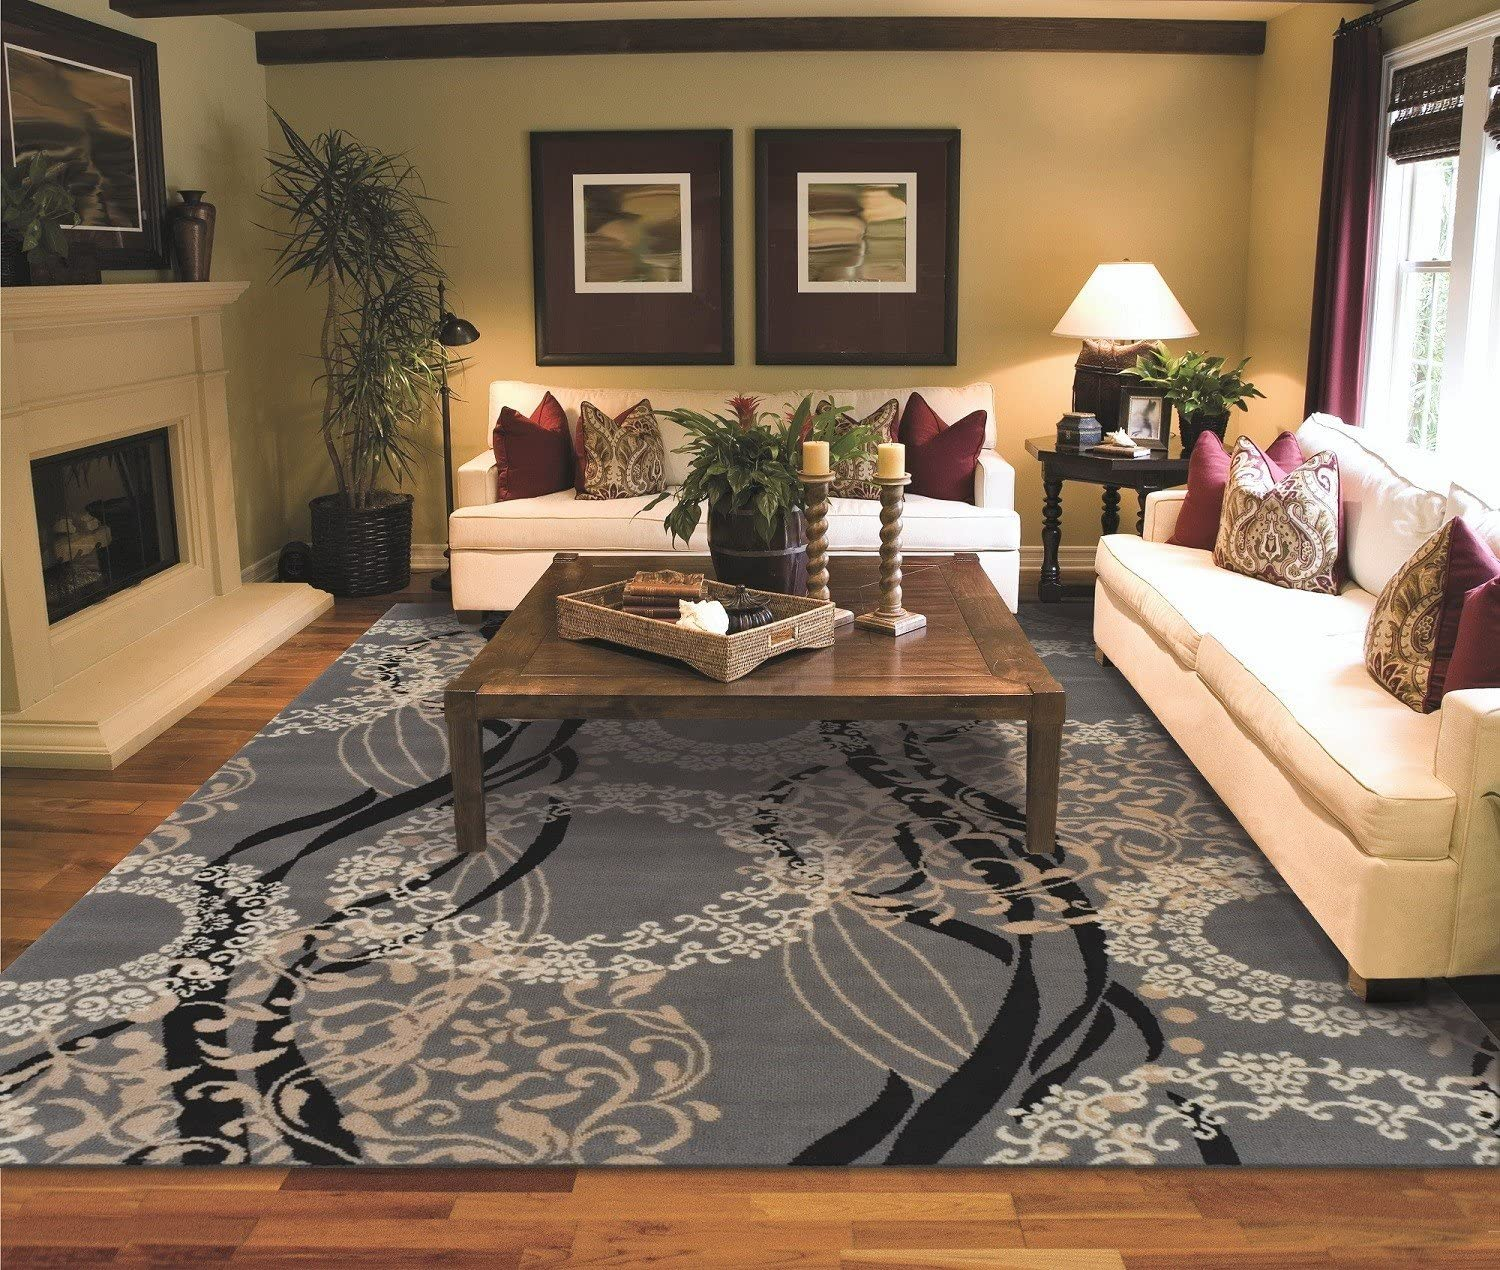 Amazon Com Area Rugs For Living Room Door Mats Inside Small Rugs For Bedroom Gray 2x3 Home Kitchen